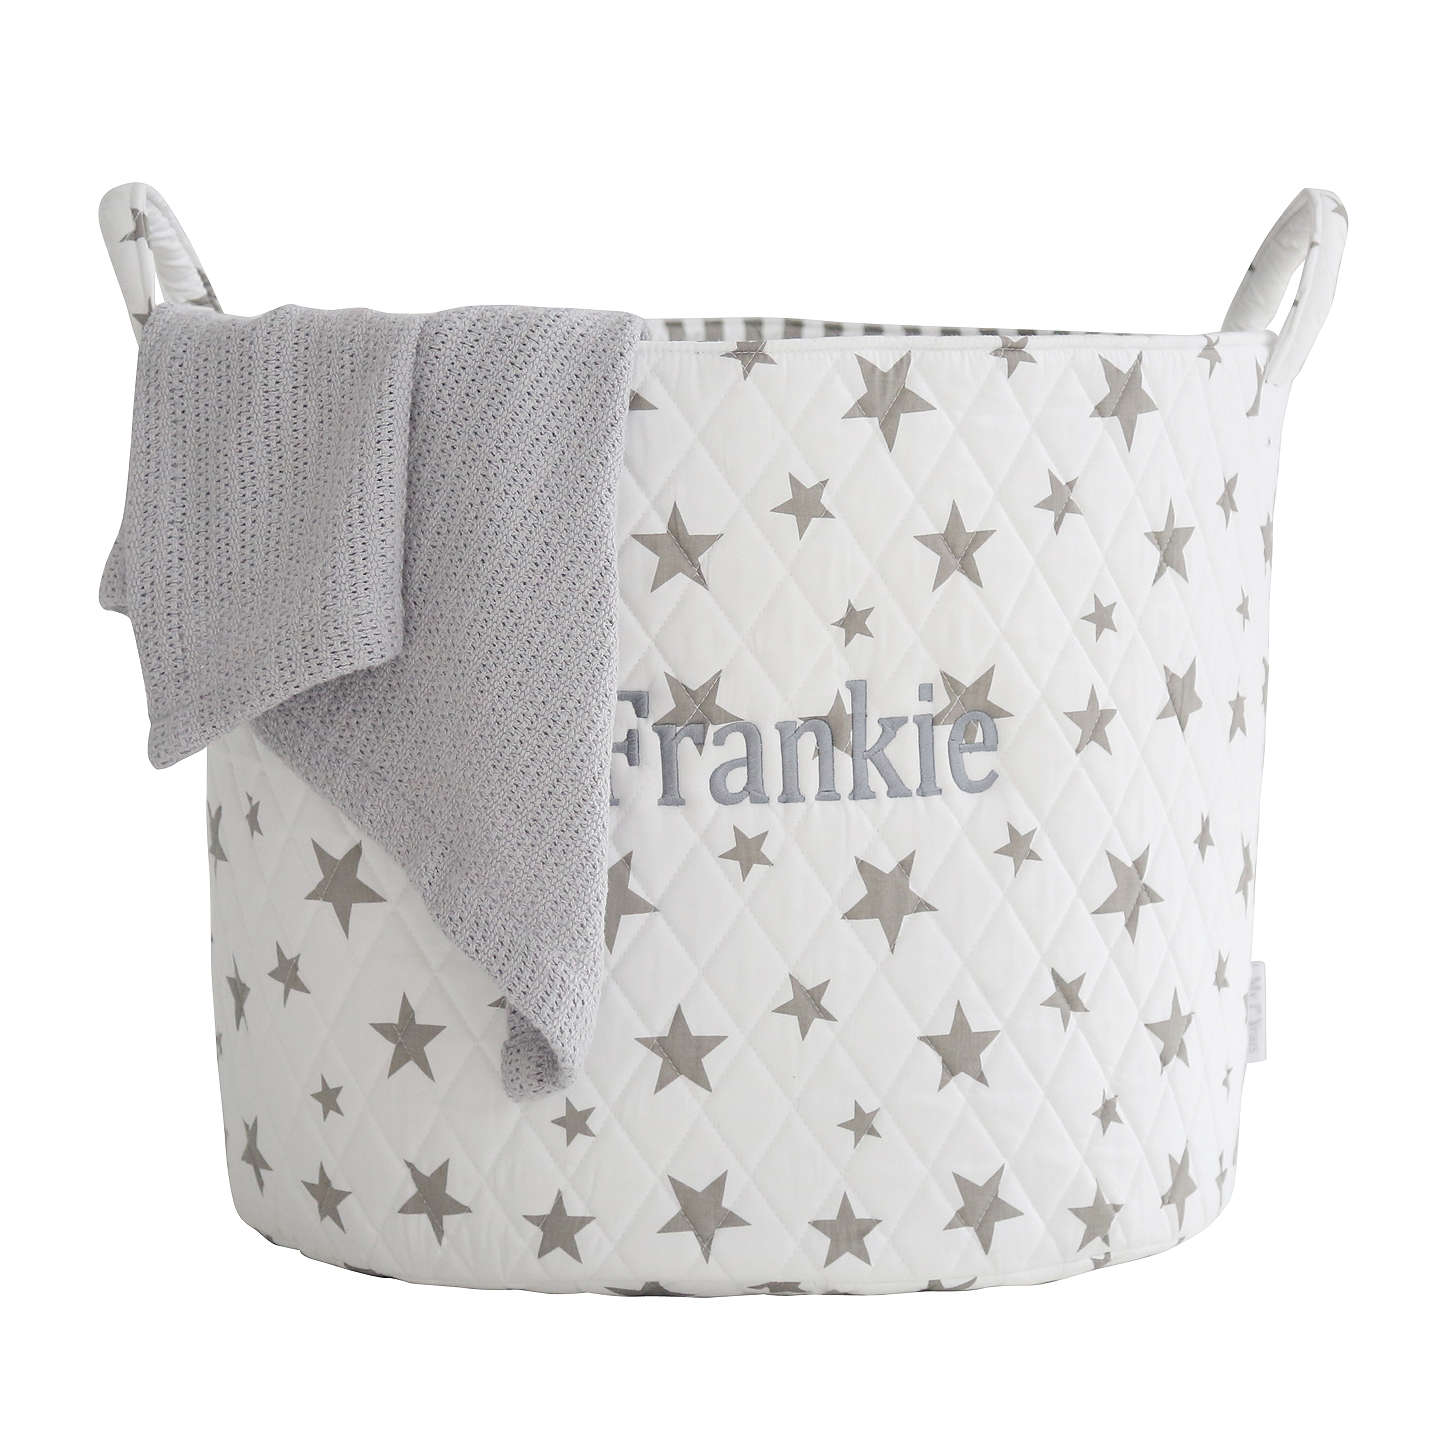 BuyMy 1st Years Star Print Storage Bag, White & Grey Online at johnlewis.com